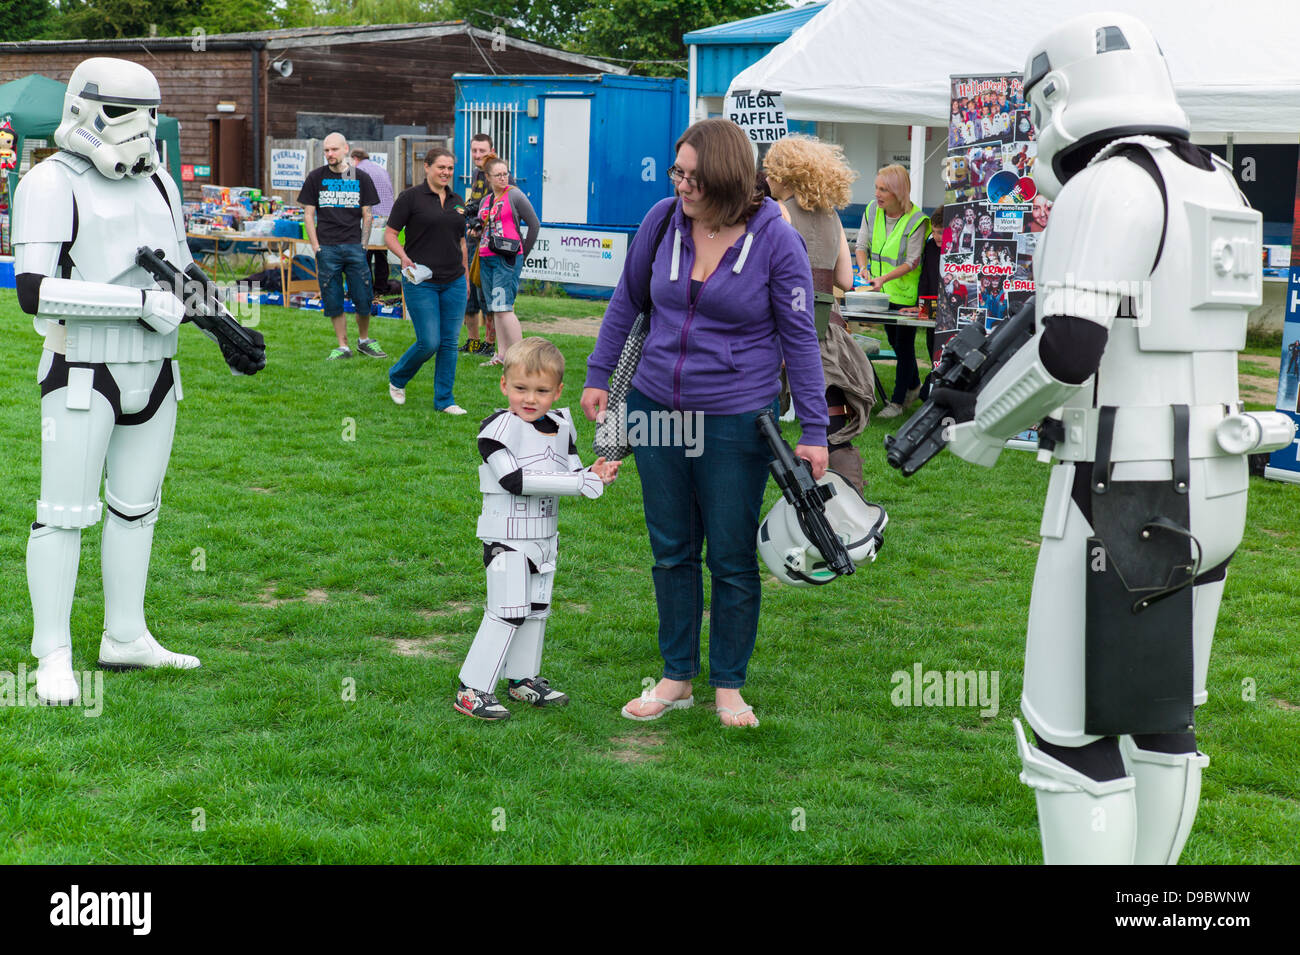 Two Storm Troopers and a Baby Storm Trooper with his Mother at the Herne Bay Si-Fi by the sea event - Stock Image